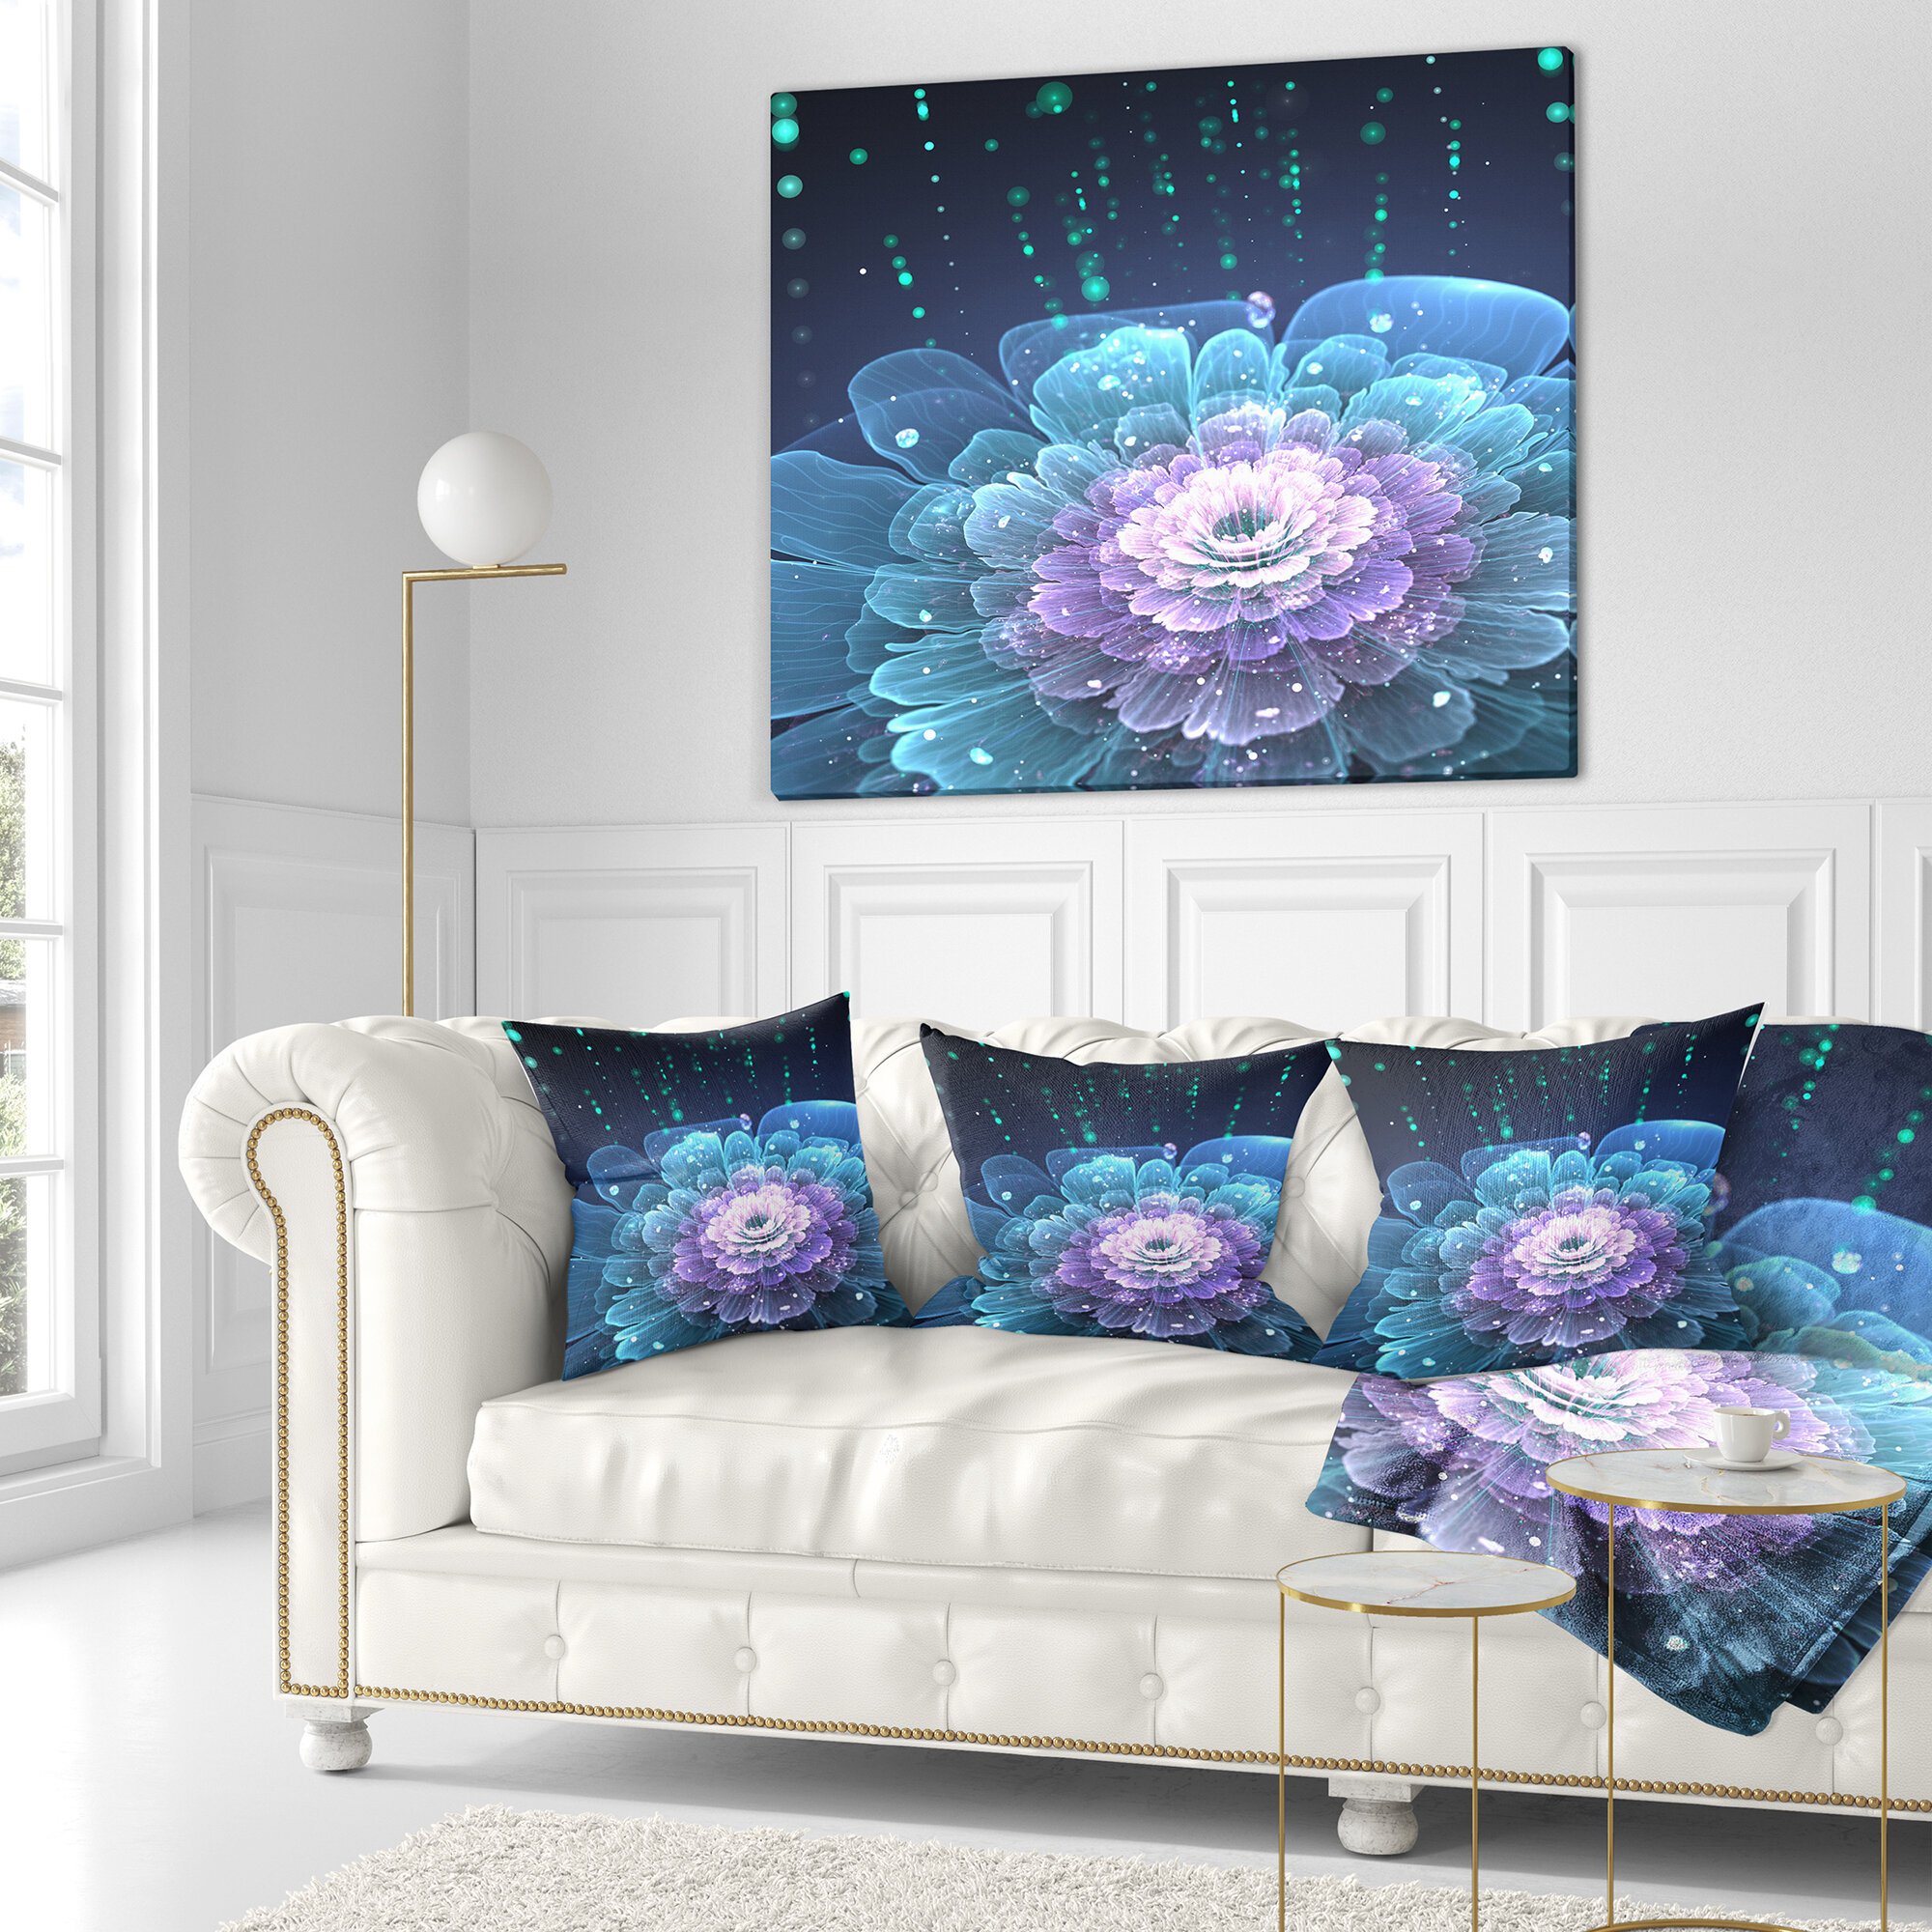 East Urban Home Designart Fractal Flower With Water Drops Floral